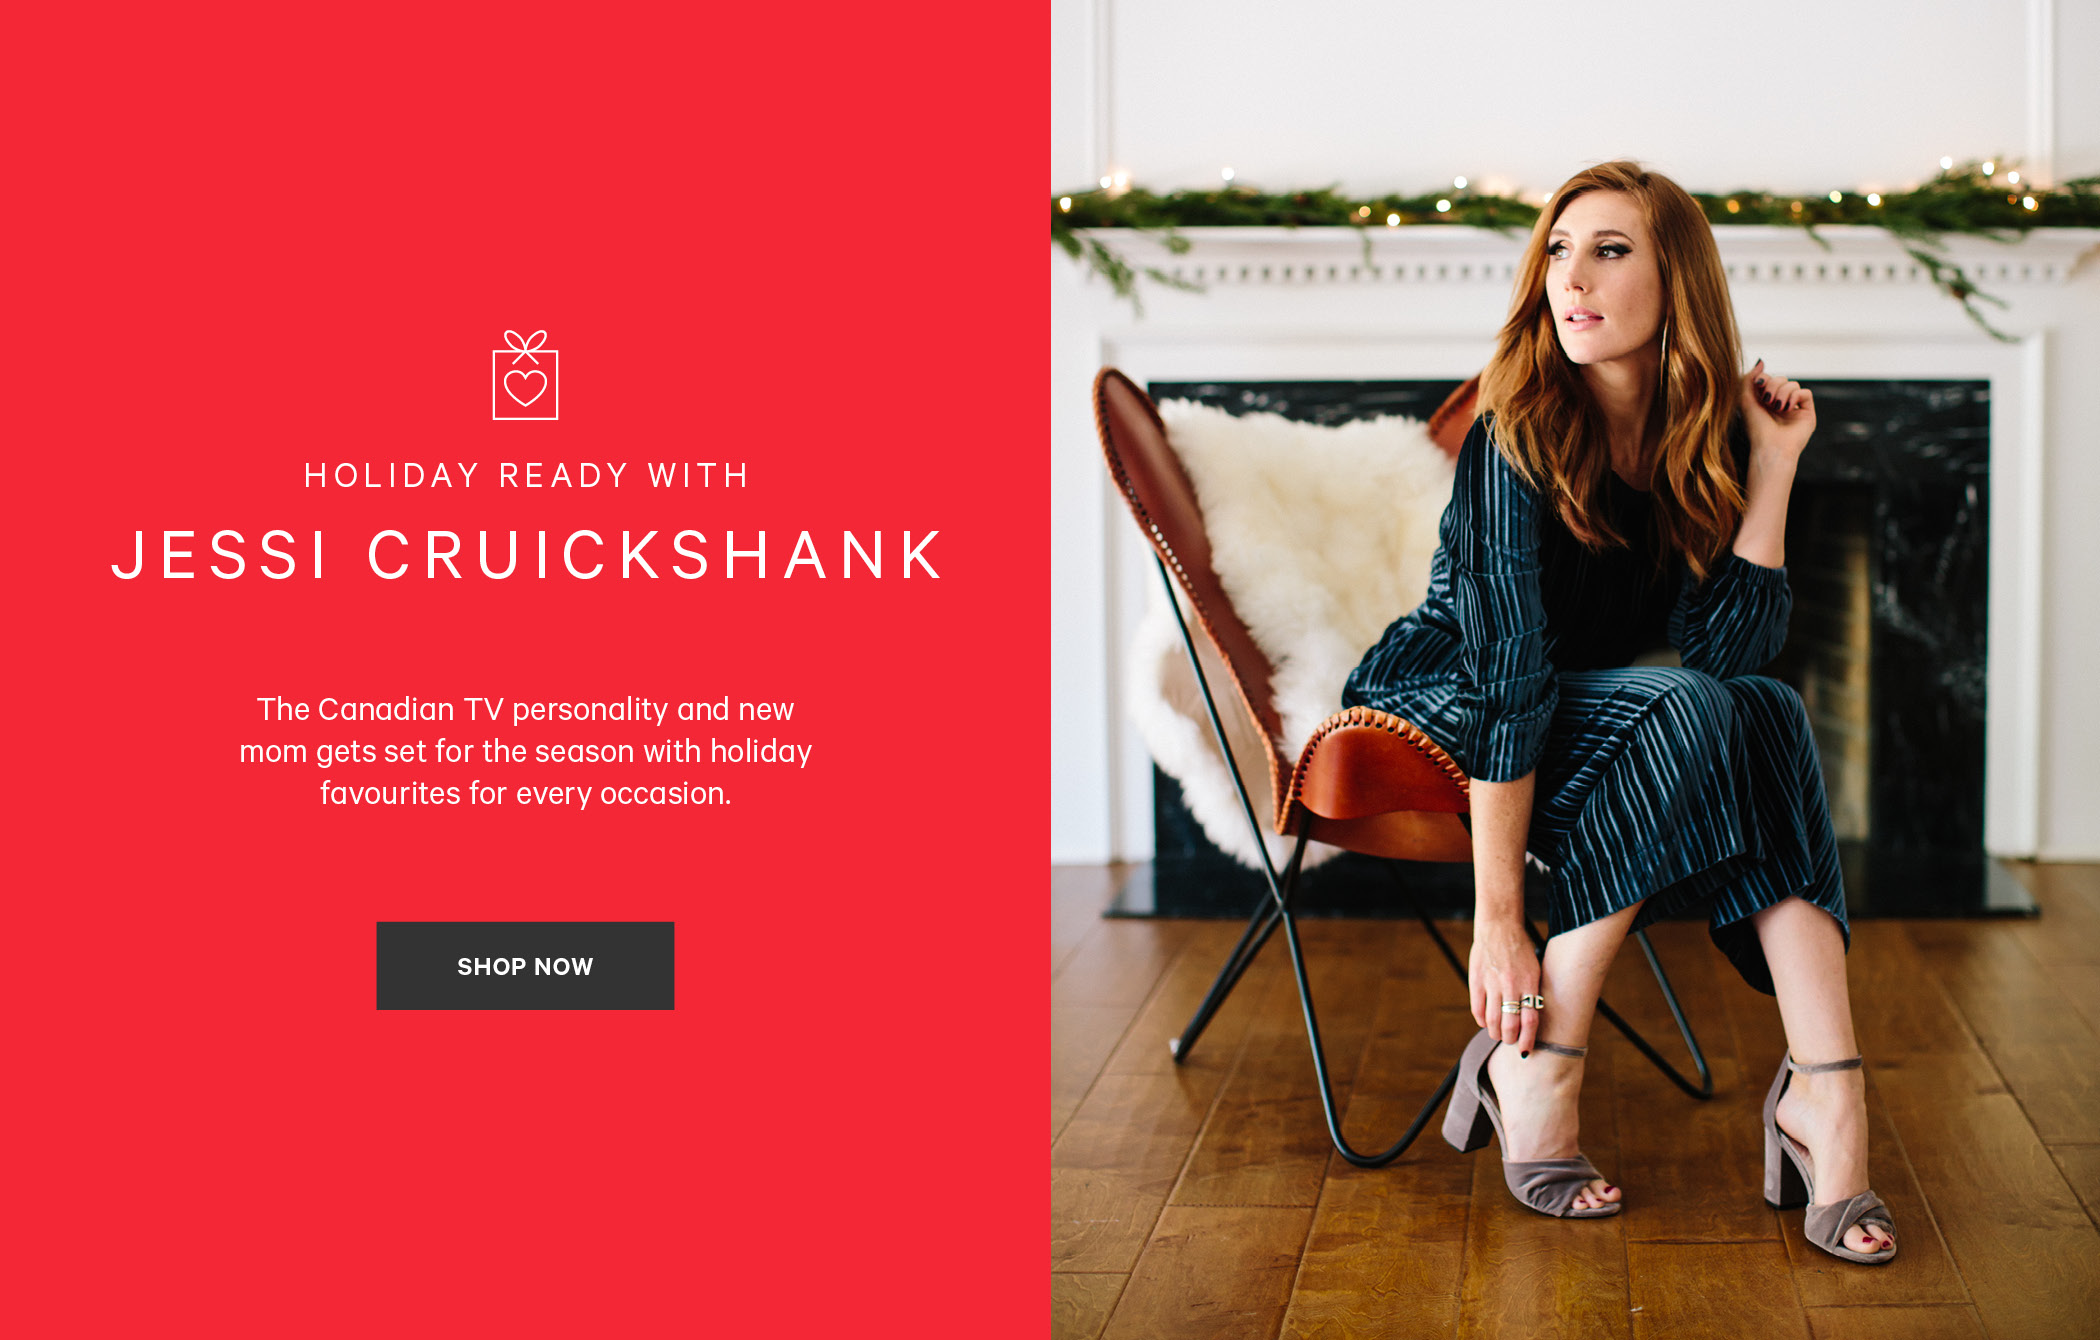 Holiday Ready with Jessi Cruickshank. Shop now